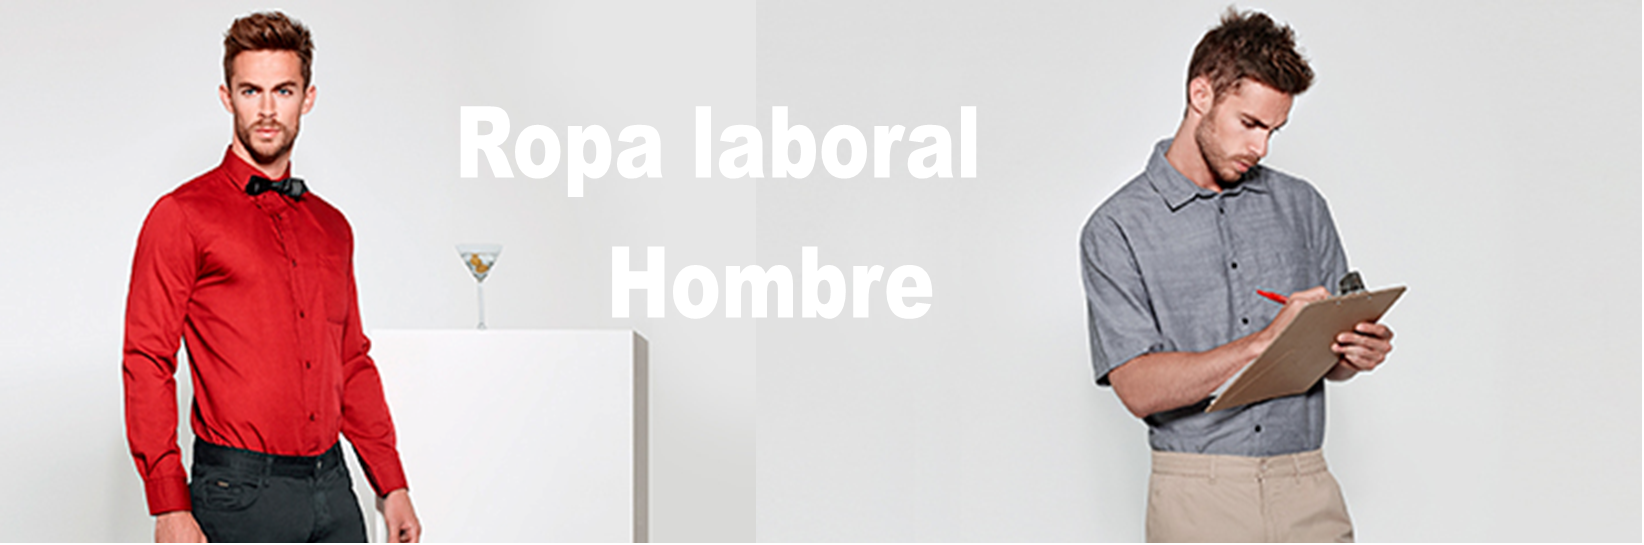 Ropa_laboral_Hombre_Bestshopping